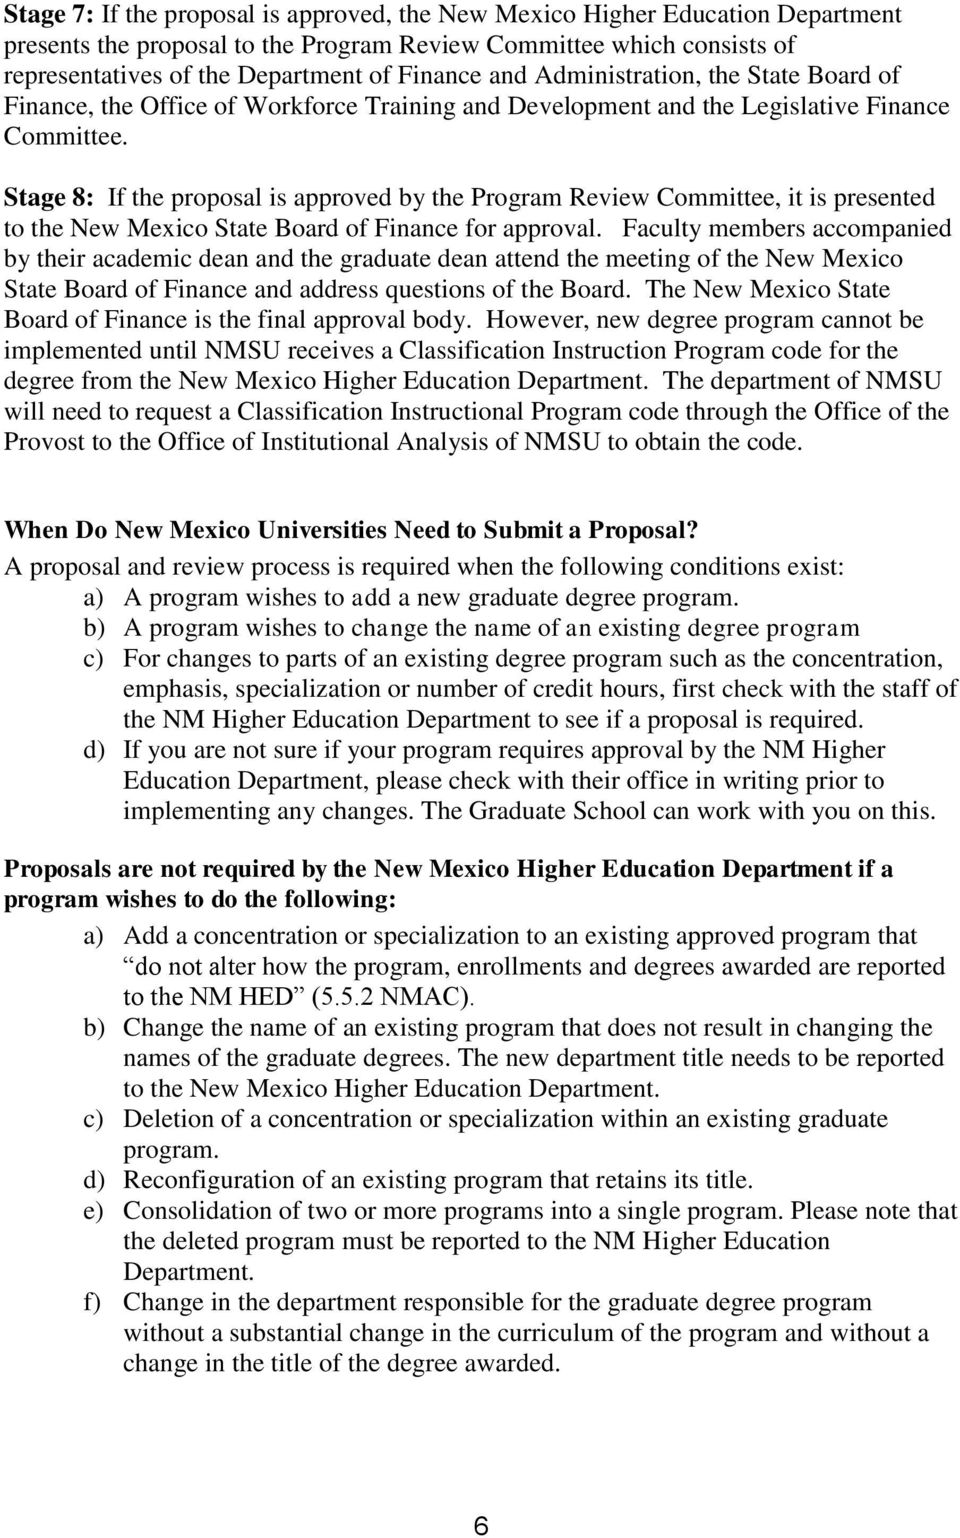 Stage 8: If the proposal is approved by the Program Review Committee, it is presented to the New Mexico State Board of Finance for approval.